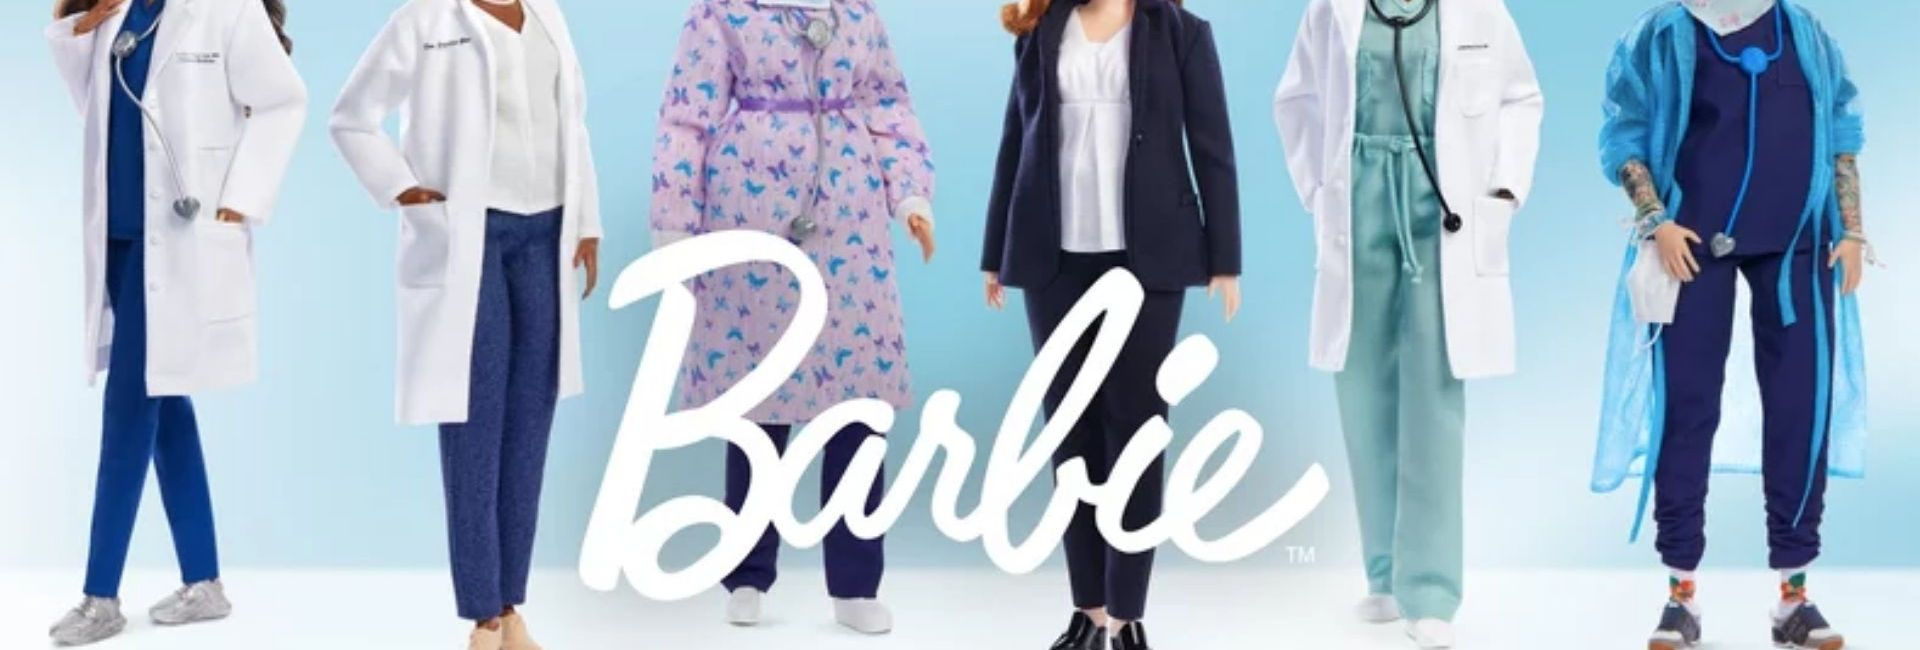 barbie-collection-covid